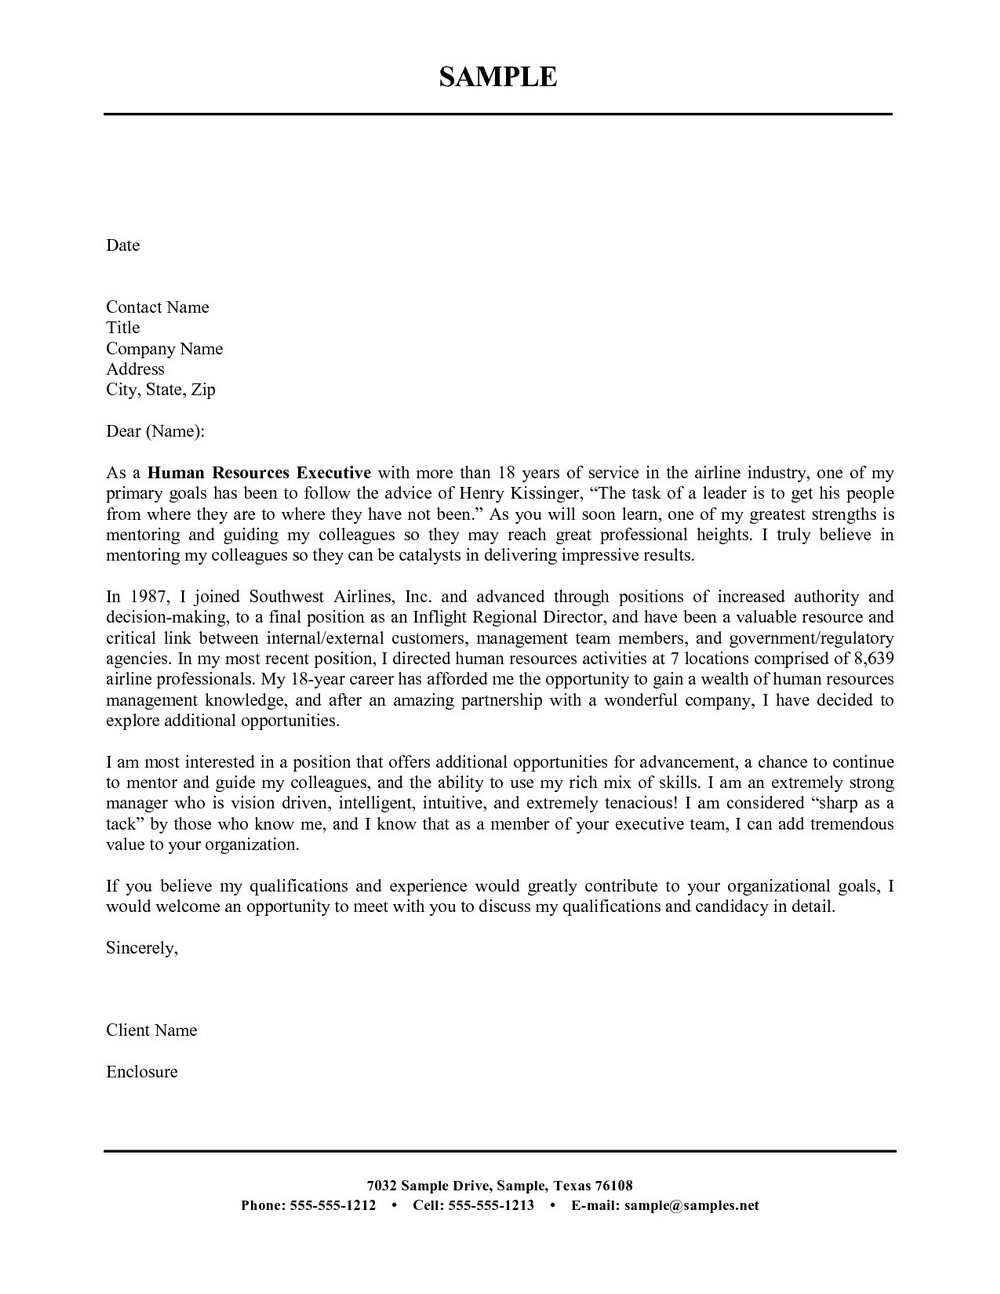 Free Cover Letter Templates Microsoft Word 2010